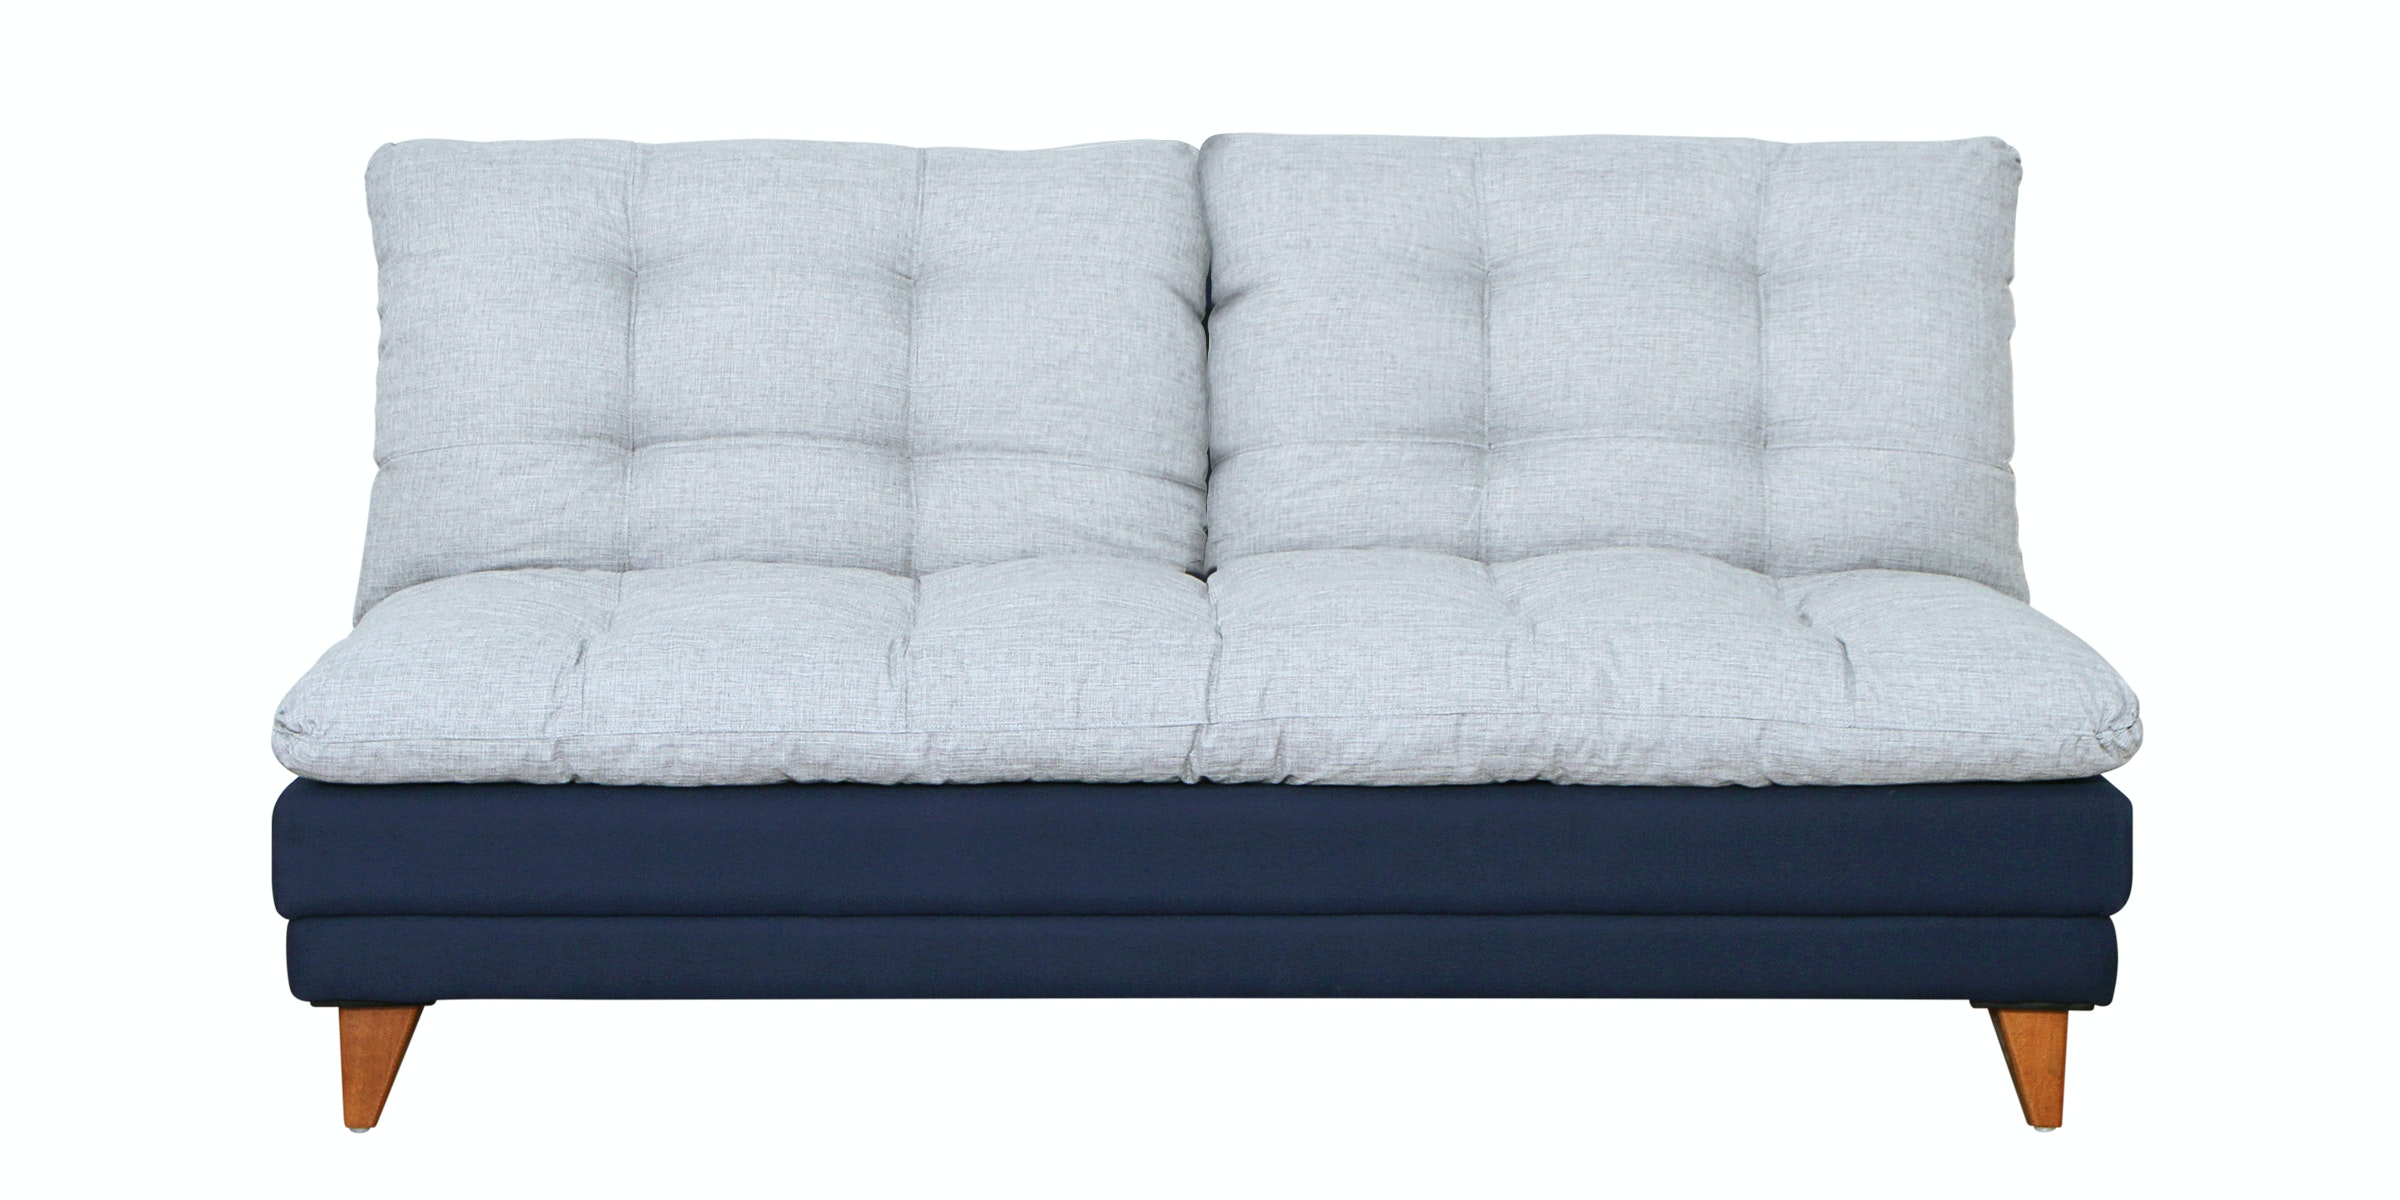 Ridente Biscuit Sofa Bed Abu